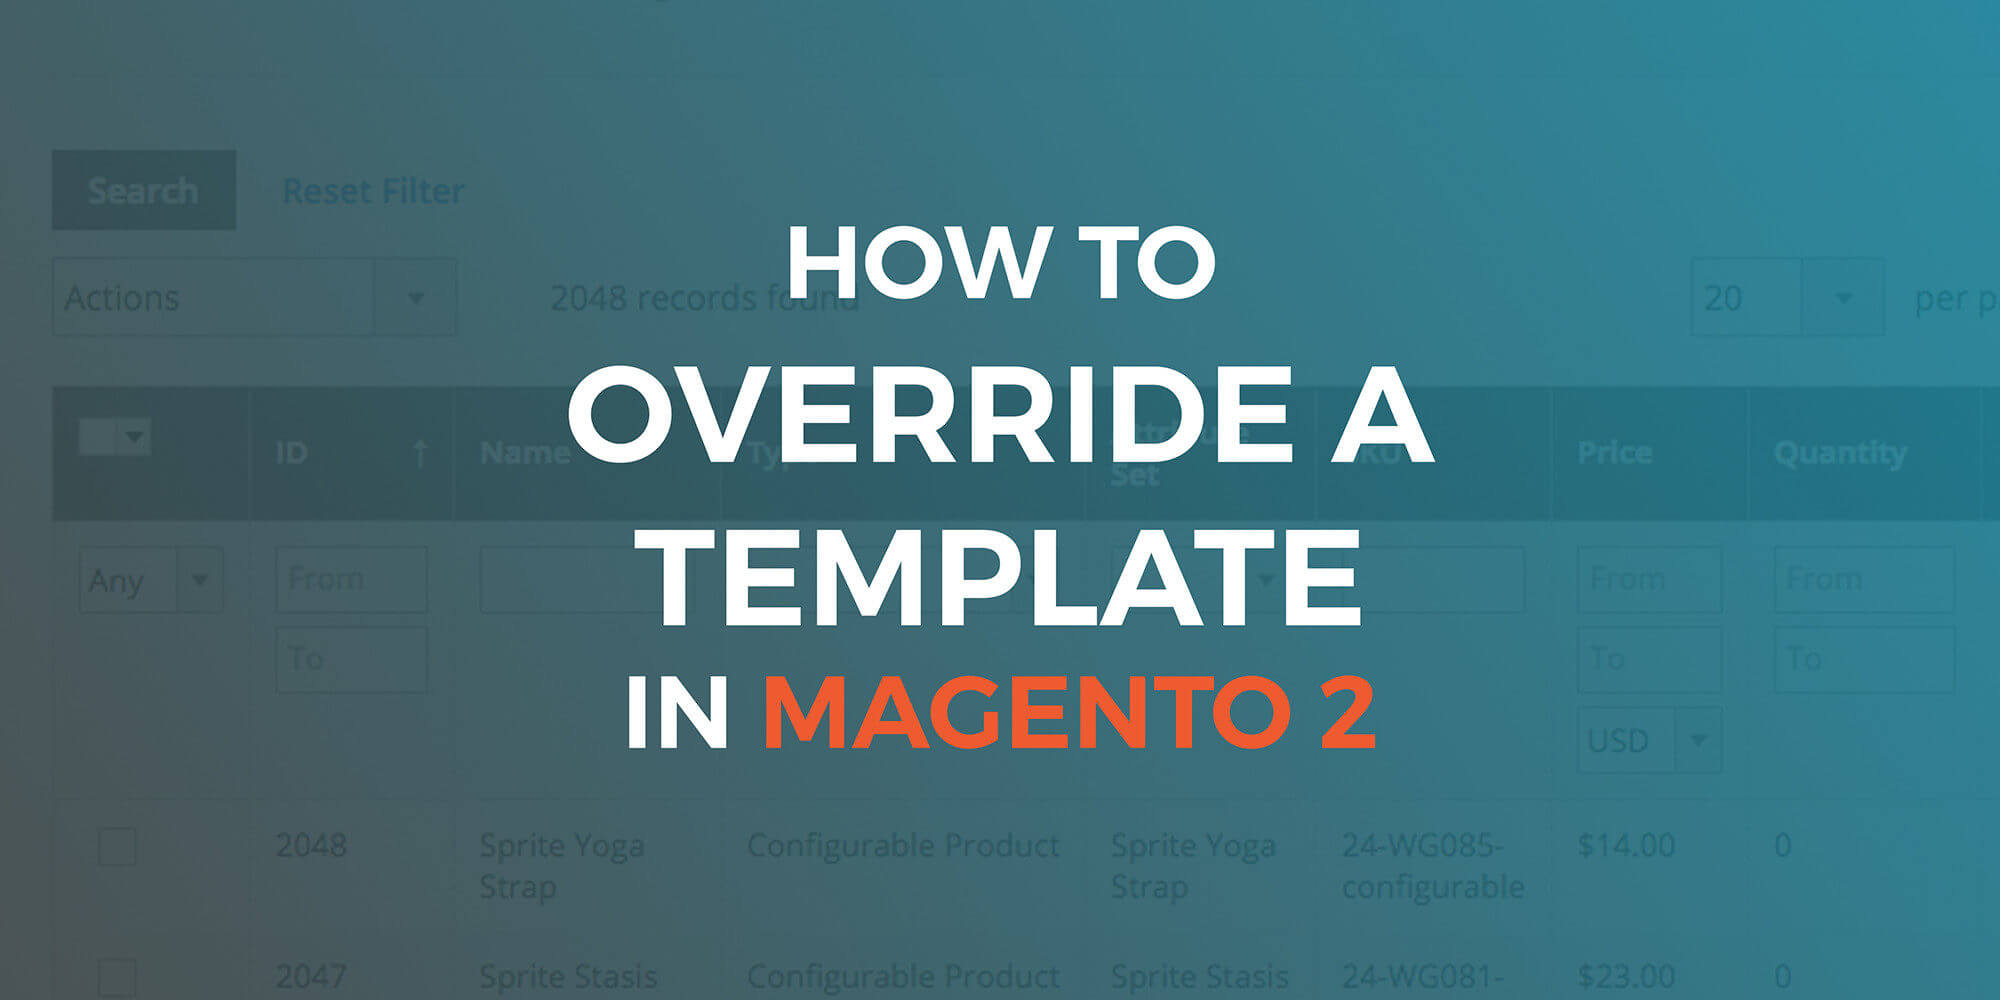 How to override a template in magento 2 classy llama blog altavistaventures Choice Image